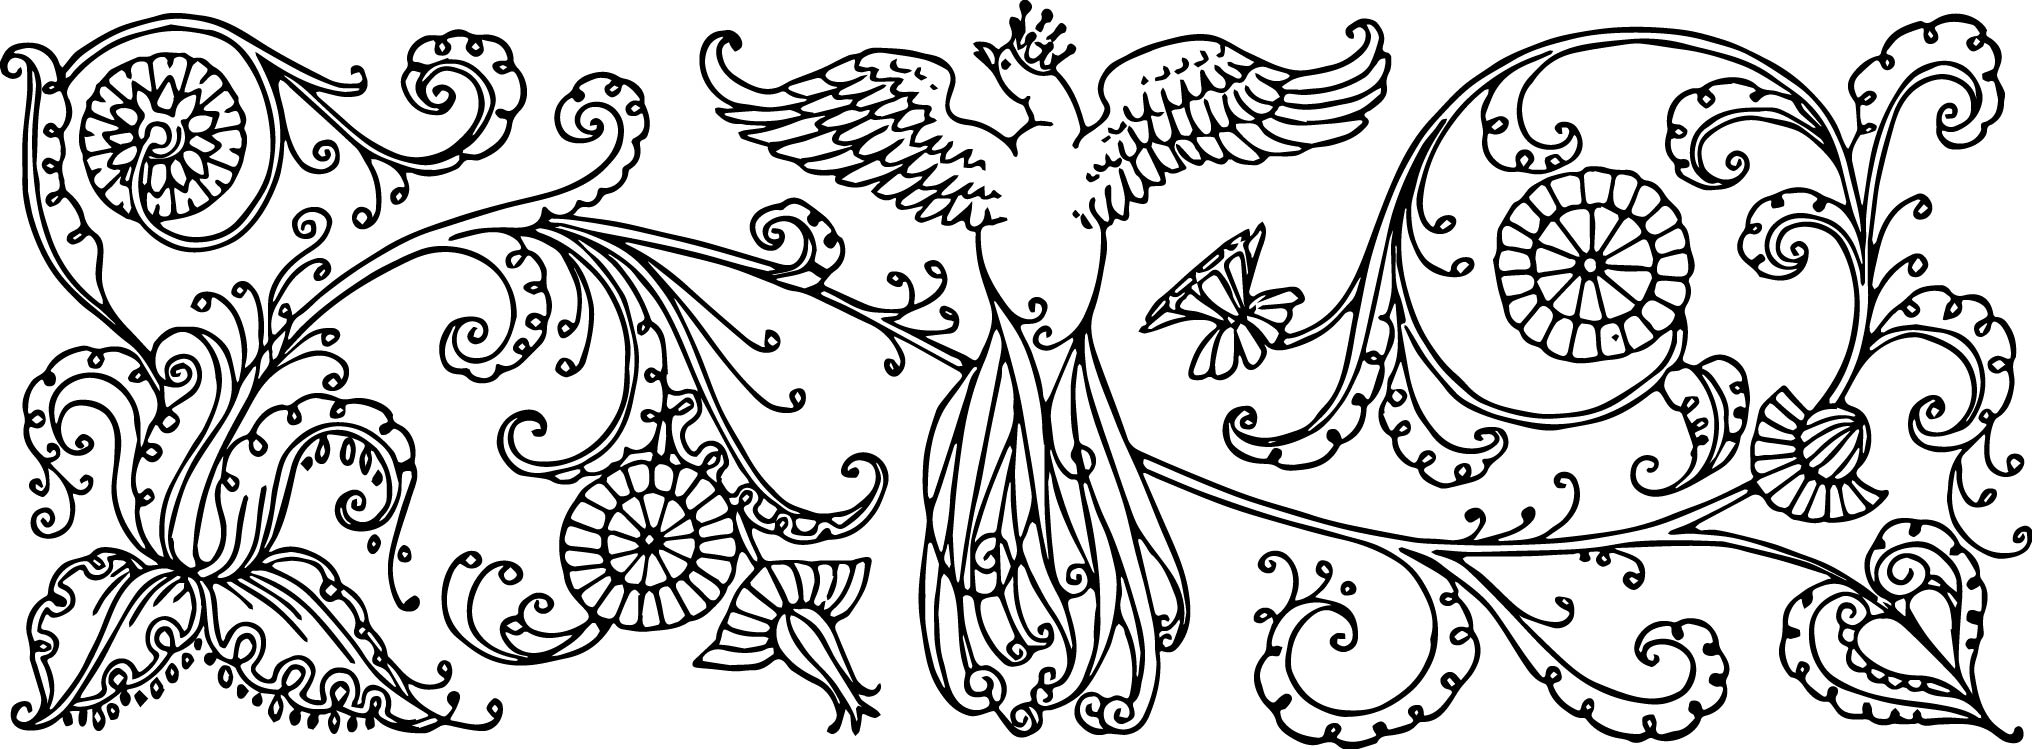 Vintage bird with crown. Beautiful clipart black and white